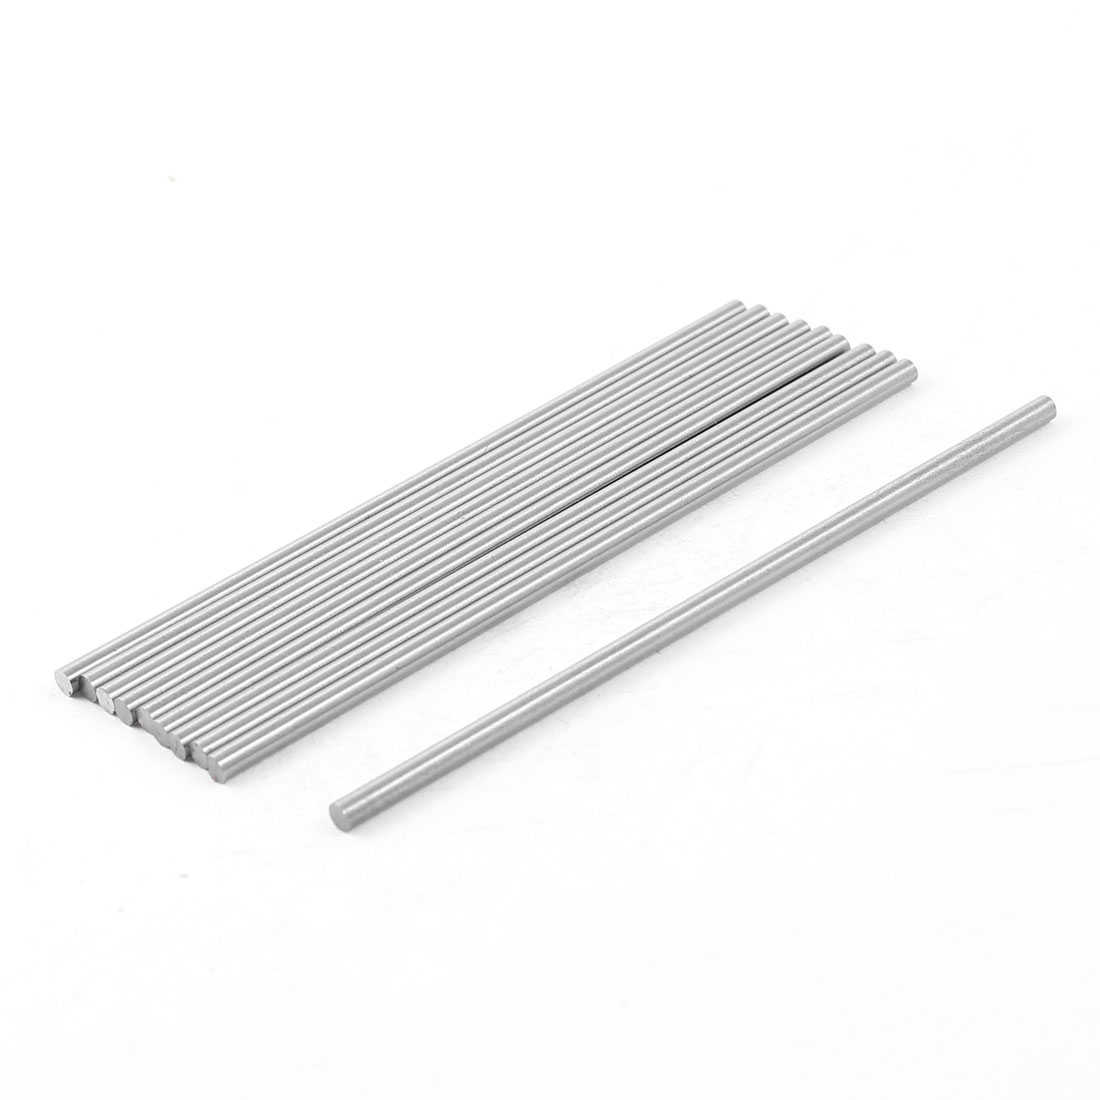 Unique Bargains 10x 3mm x 100mm HSS Grooving Tool Round Turning Lathe Bars Silver Gray